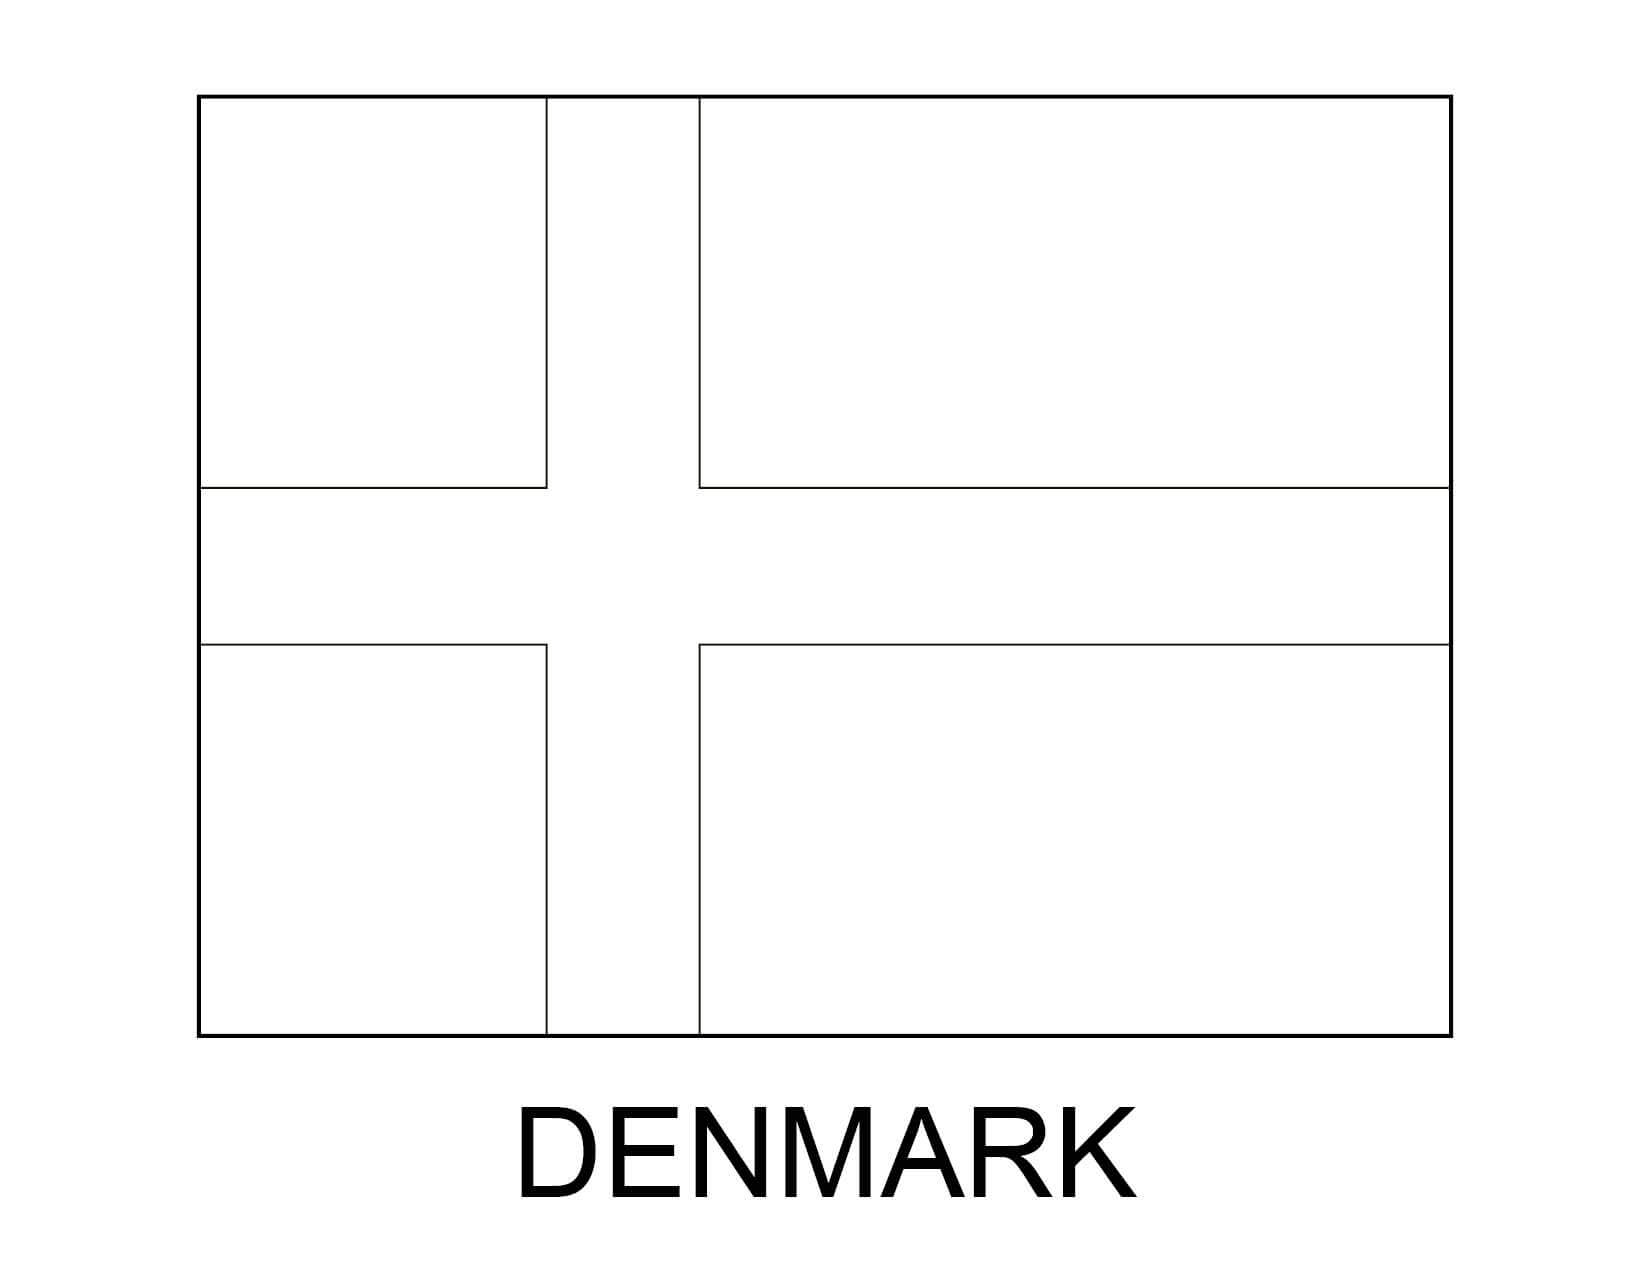 Geography Flashcards - Denmark